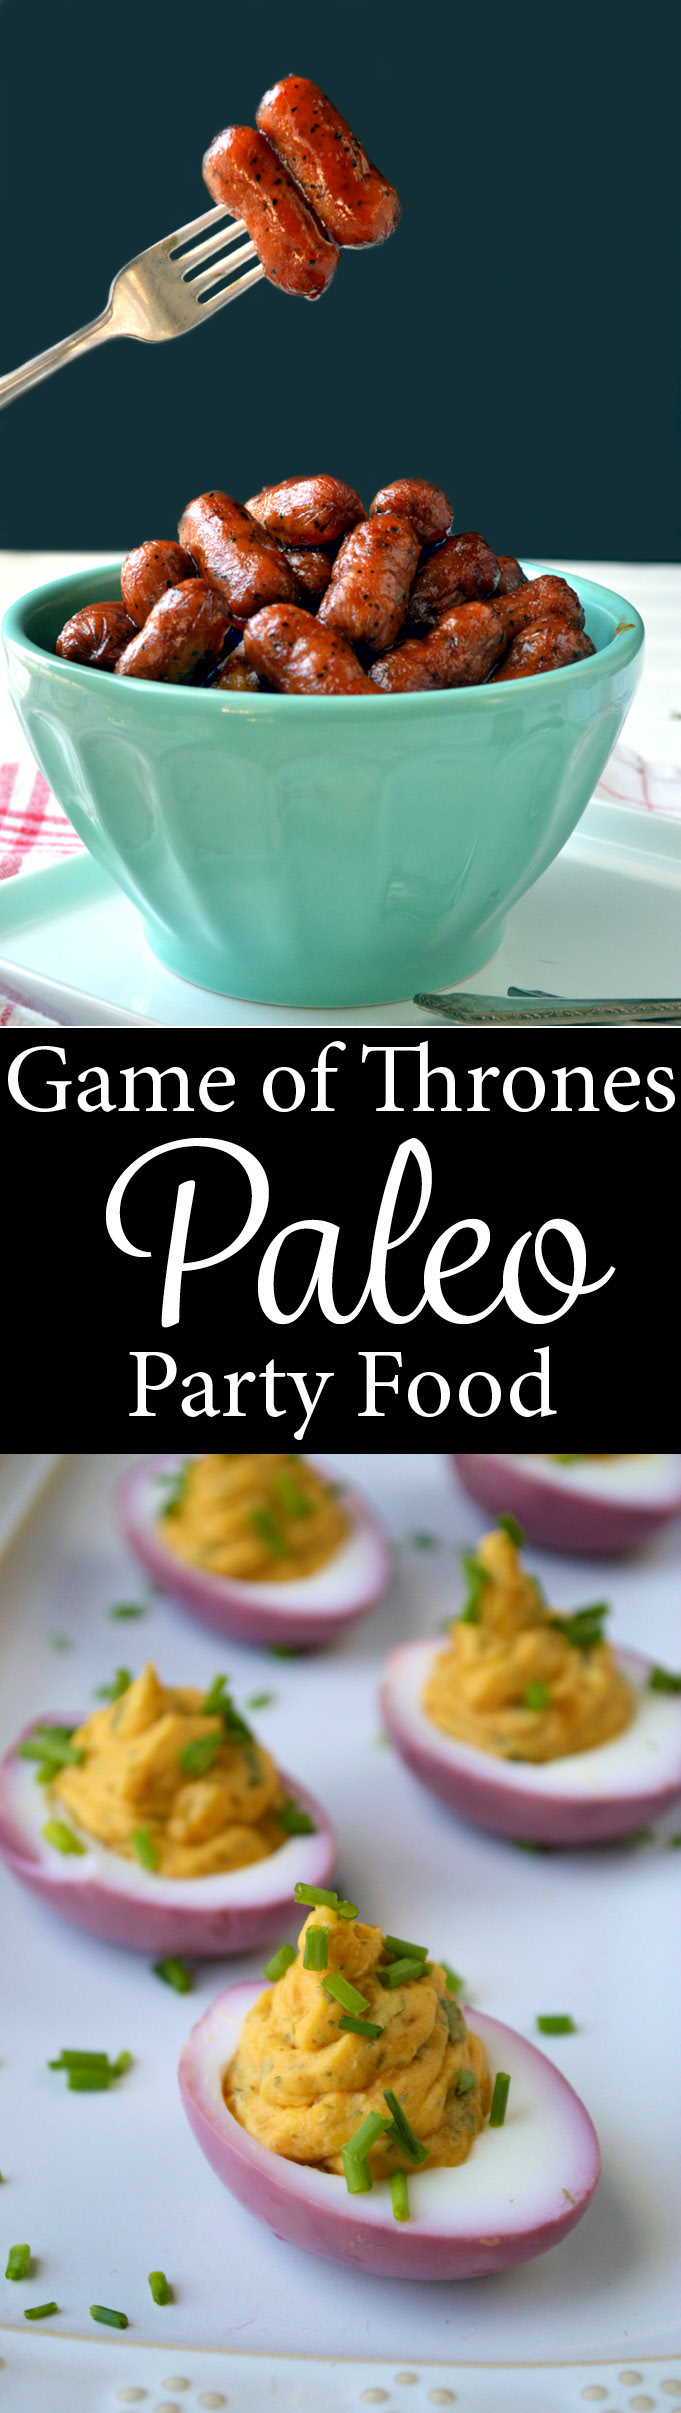 Game Of Thrones Paleo Party Food Plaid Paleo